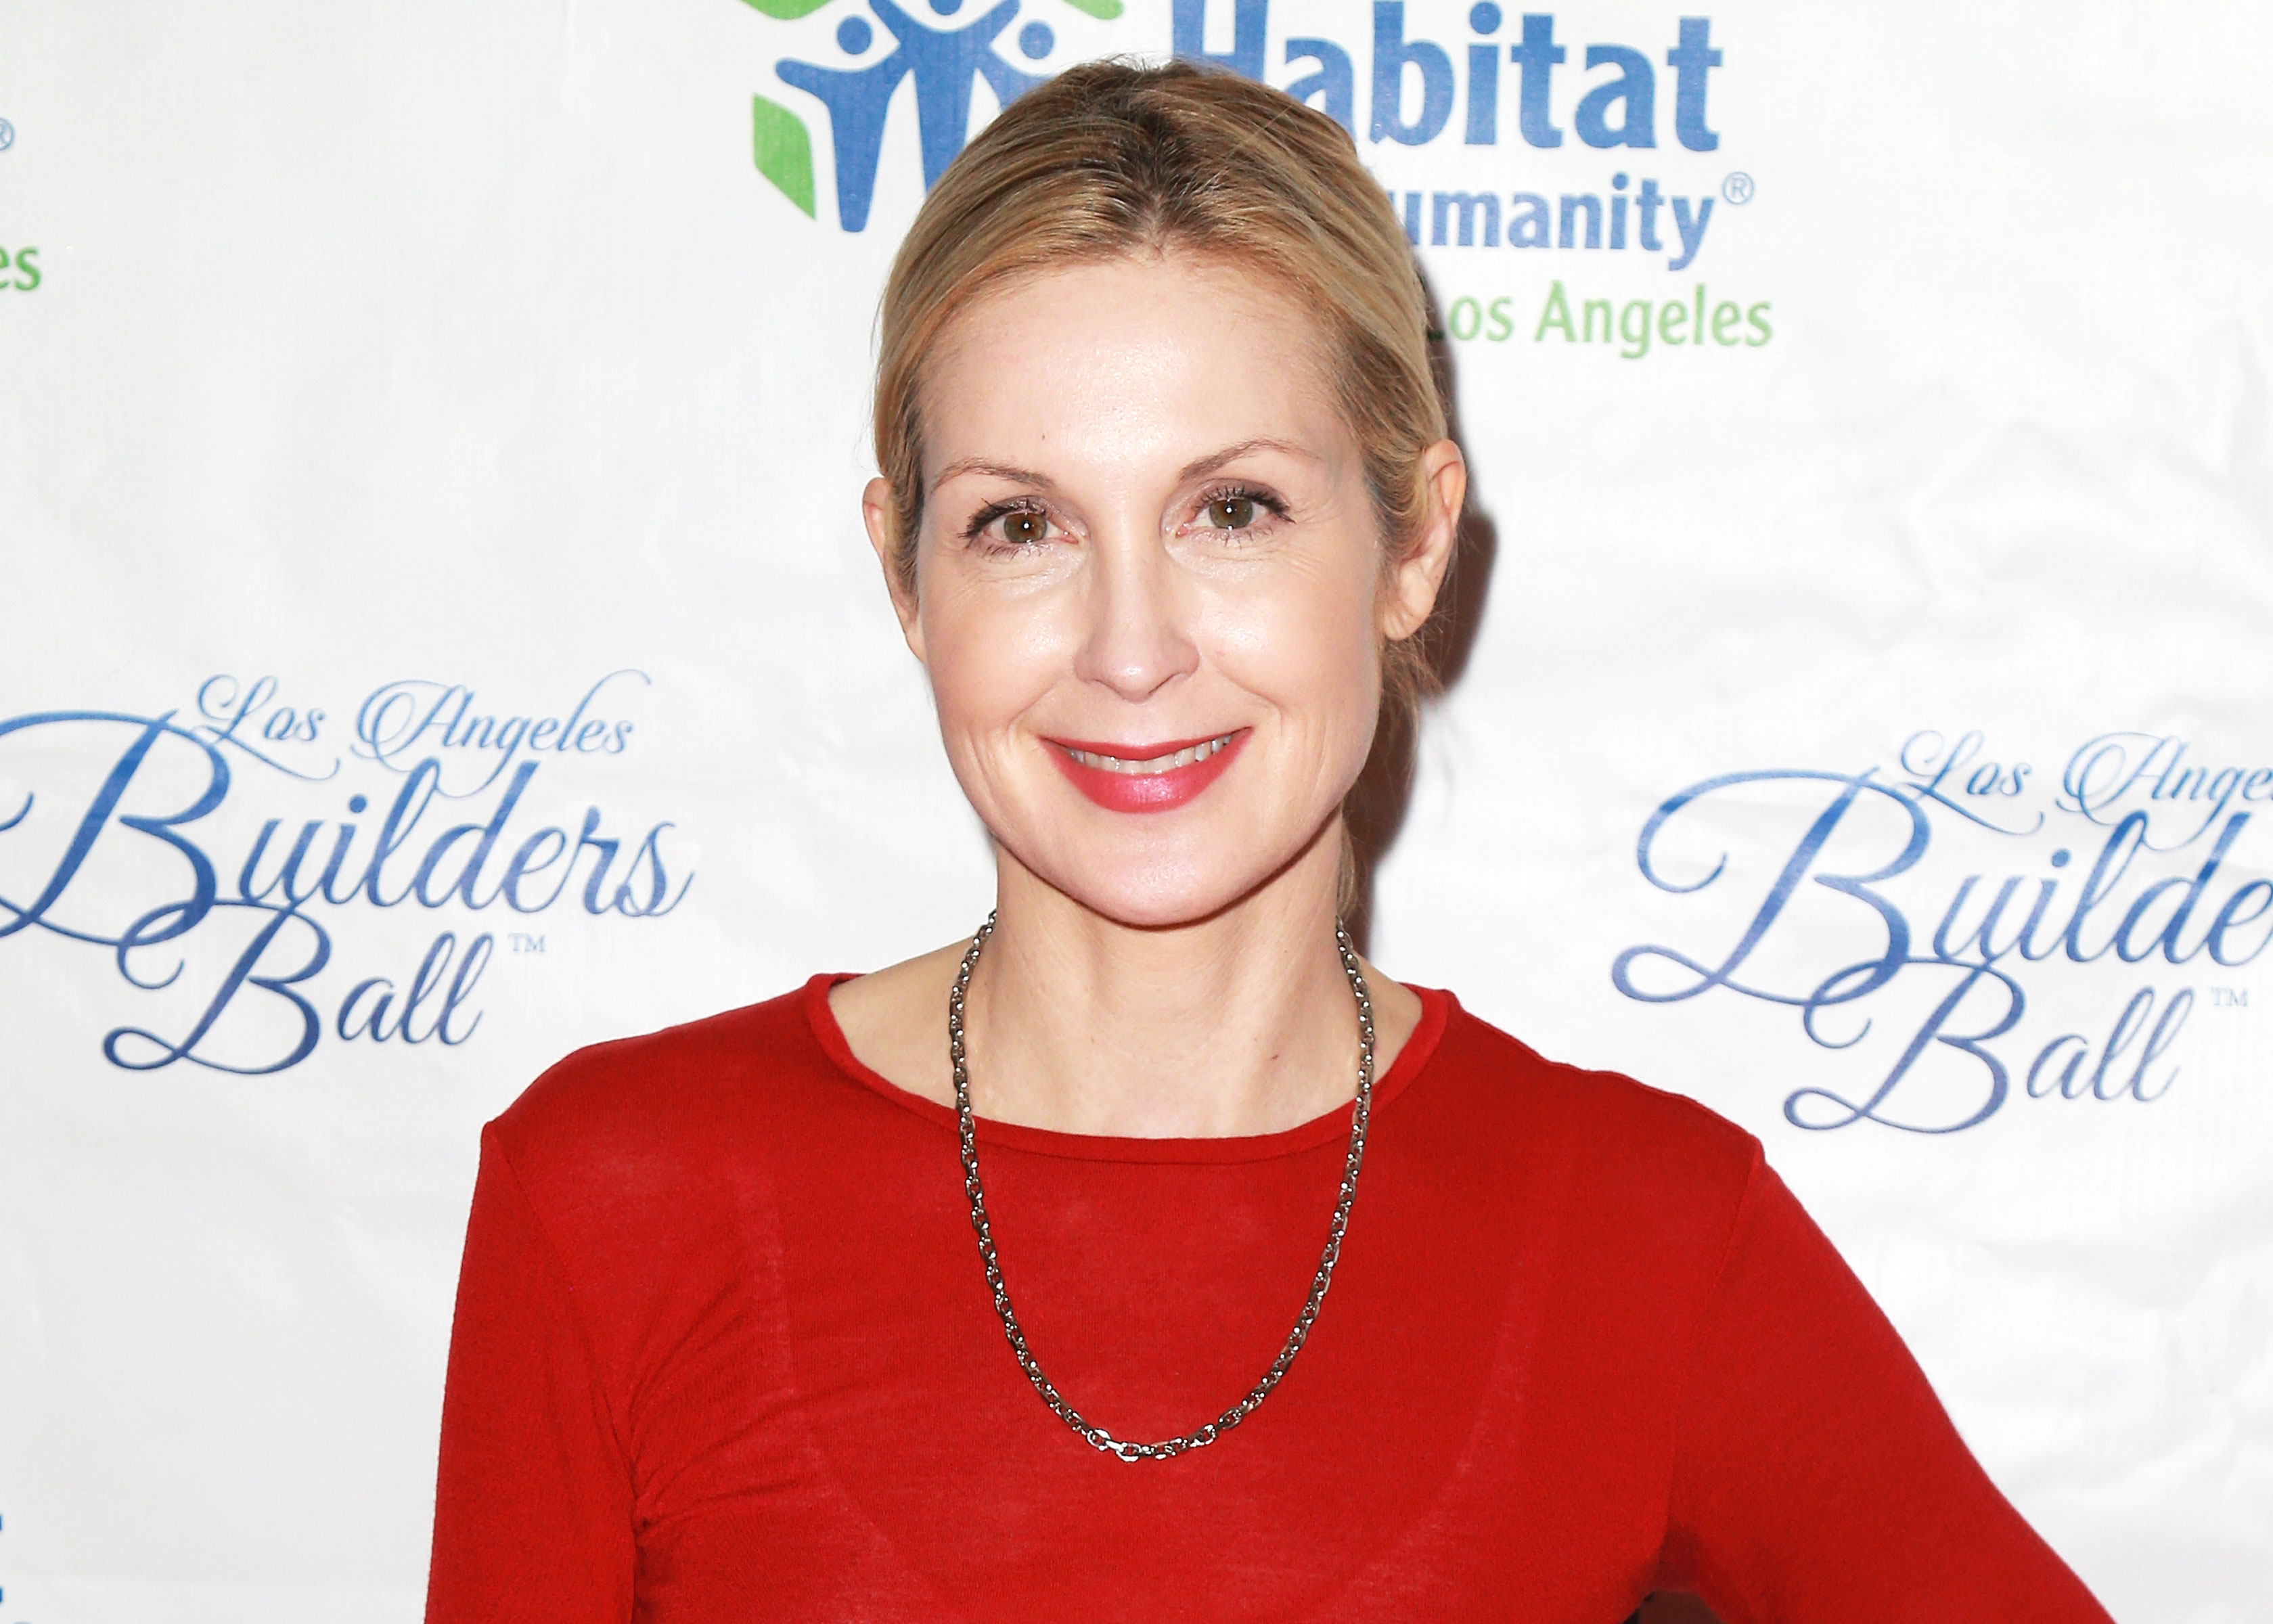 Kelly Rutherford - BEVERLY HILLS, CA – SEPTEMBER 28: Actress Kelly Rutherford attends the 2017 Los Angeles Builders Ball at The Beverly Hilton Hotel on September 28, 2017 in Beverly Hills, California. (Photo by Leon Bennett/WireImage)